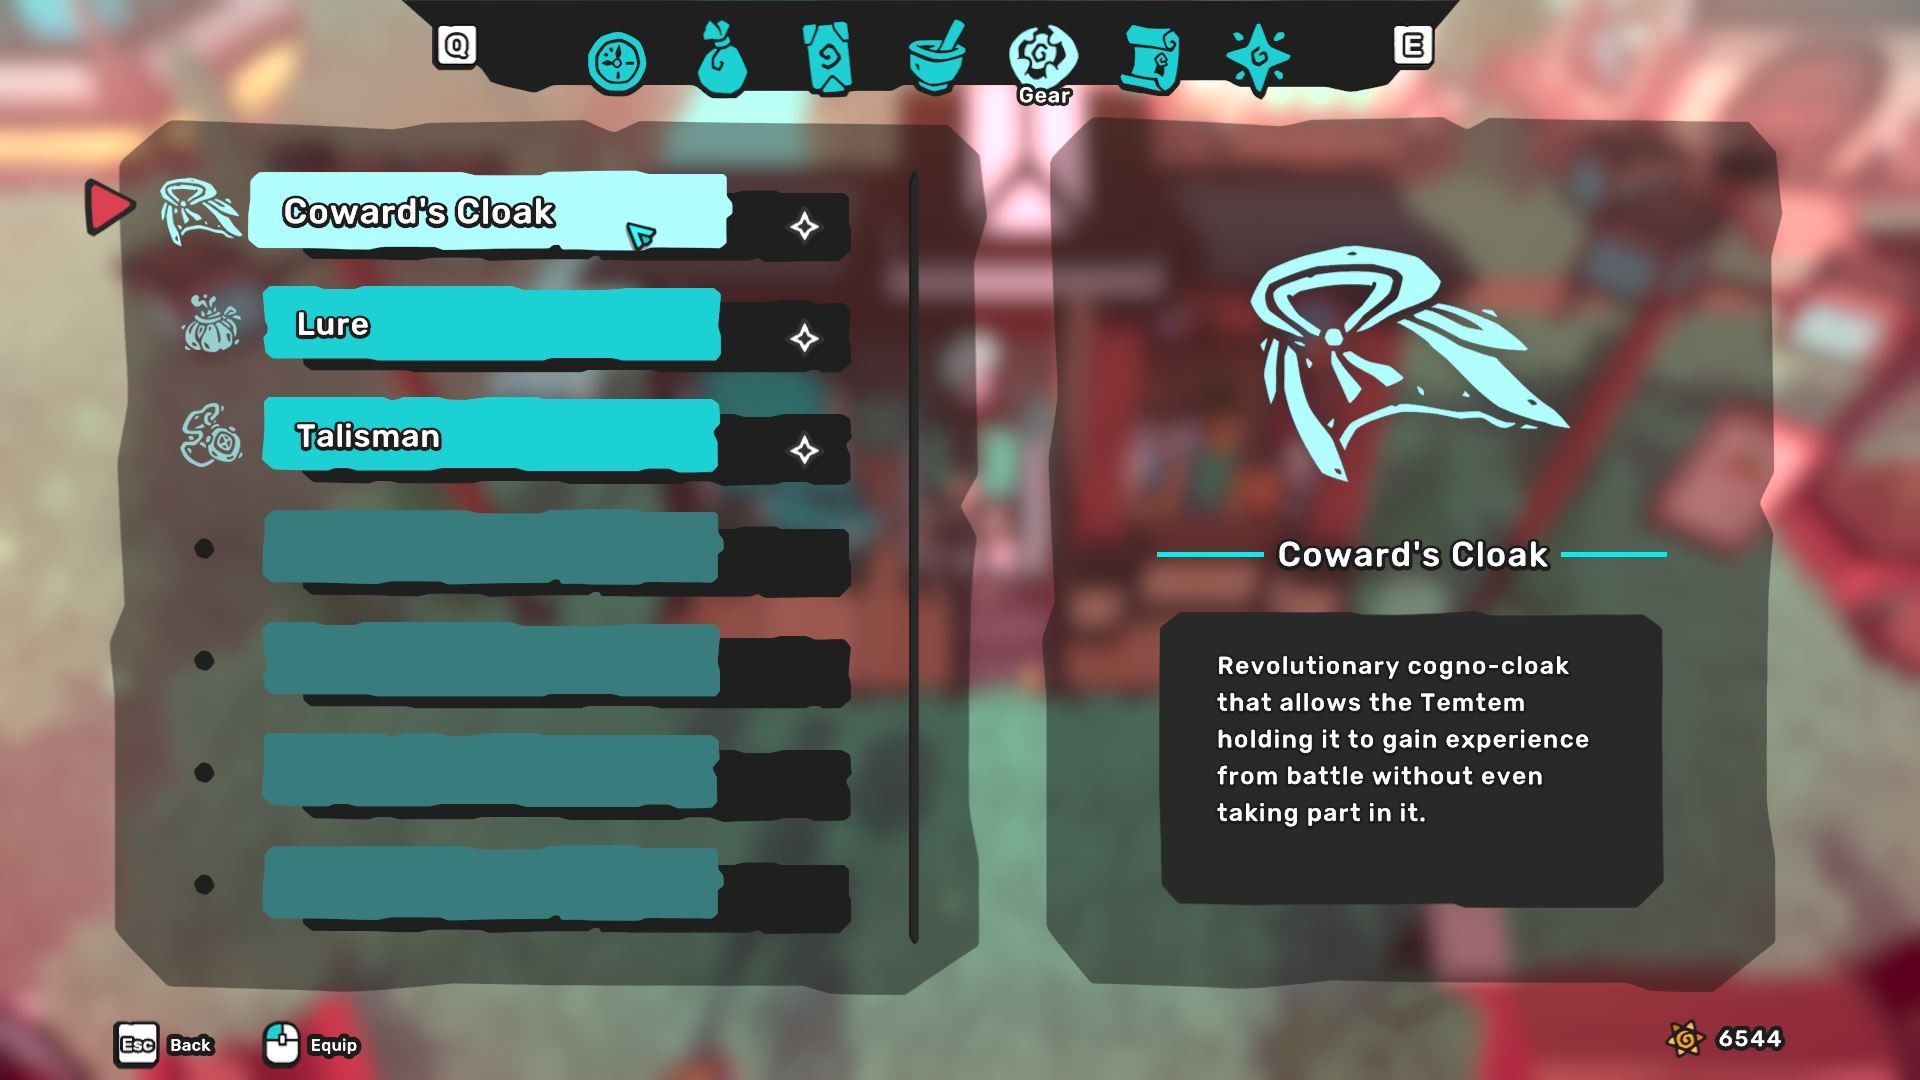 How to get the Coward's Cloak in Temtem